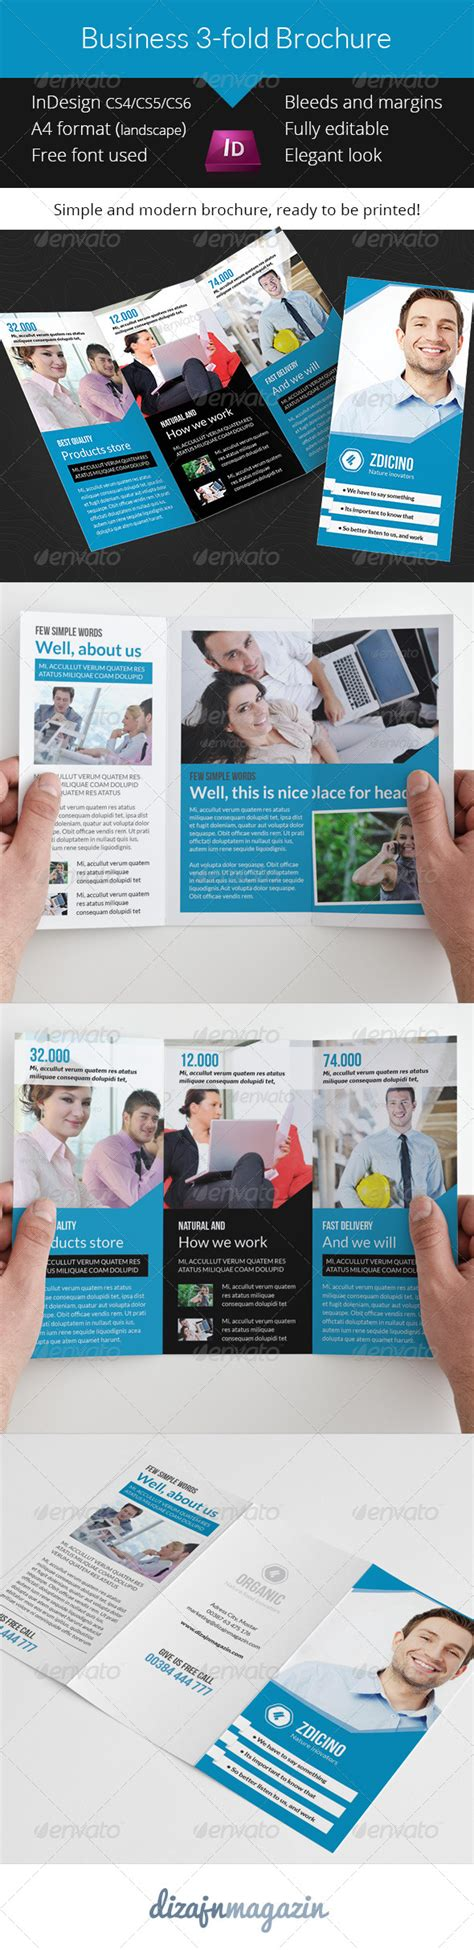 Free Indesign Brochure Templates Cs6 by 9 Best Images Of Brochure Templates For Indesign Cs5